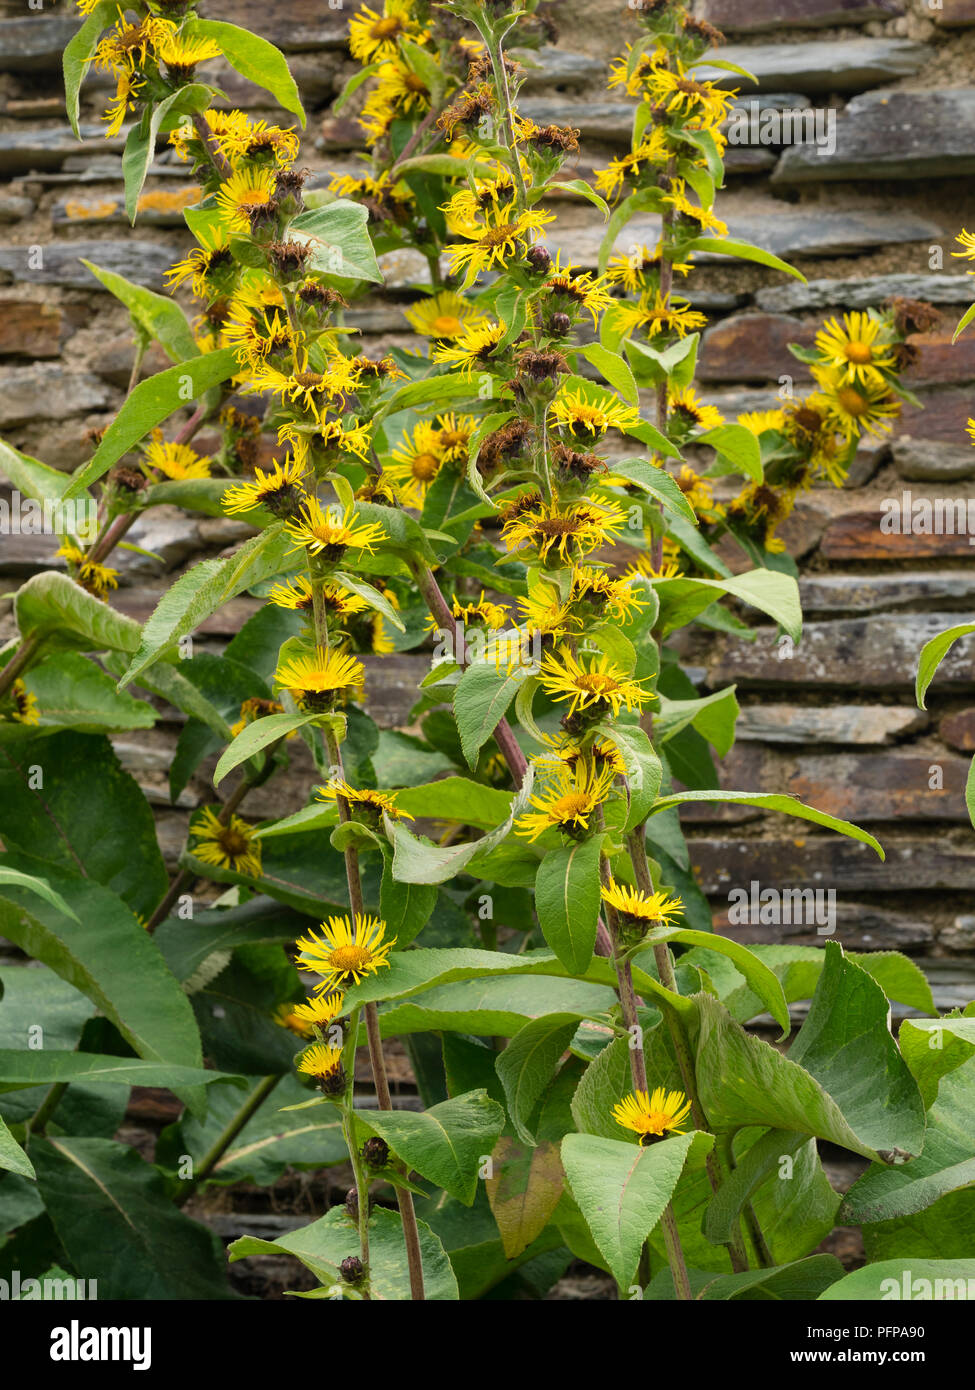 Tall flower spikes stock photos tall flower spikes stock images tall spikes with yellow daisy flowers at each leaf axil of the indian elecampane inula izmirmasajfo